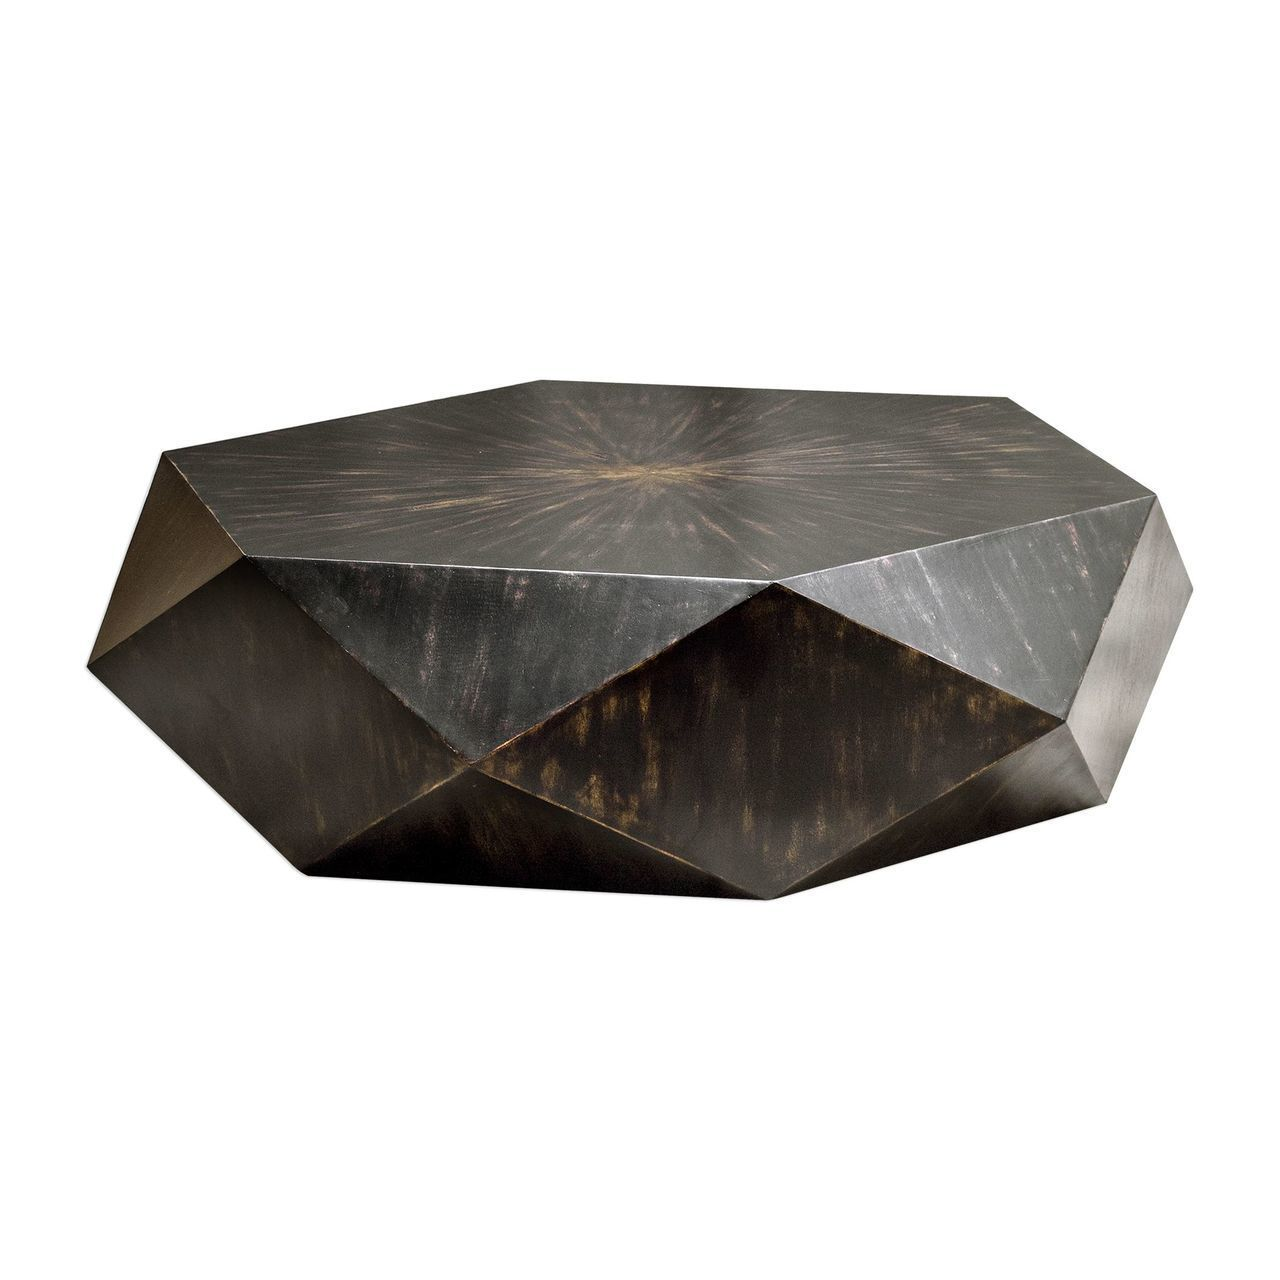 Faceted Large Round Wood Coffee Table Modern Geometric Block Solid My Swanky Home Round Wood Coffee Table Geometric Coffee Table Black Coffee Tables [ 1280 x 1280 Pixel ]